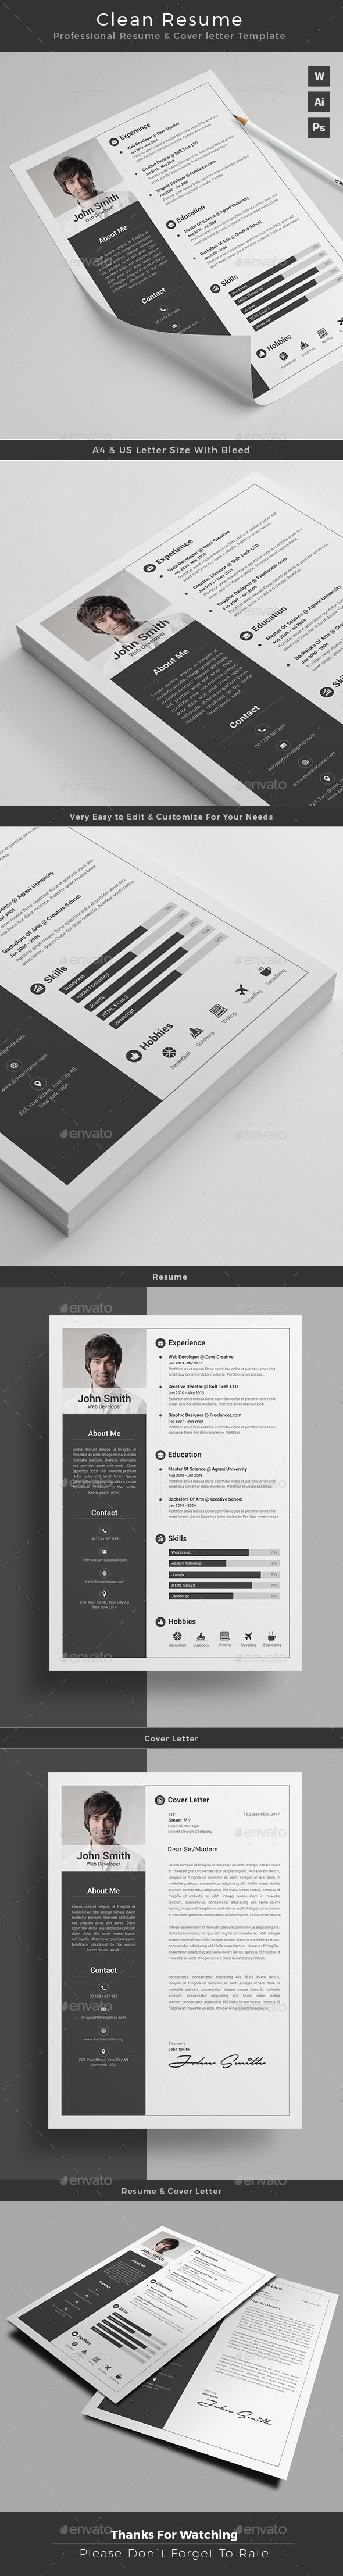 #CleanResumeDesign + Free cover letter template | Instant Download  https://graphicriver.net/item/resume/17447049?ref=themedevisers